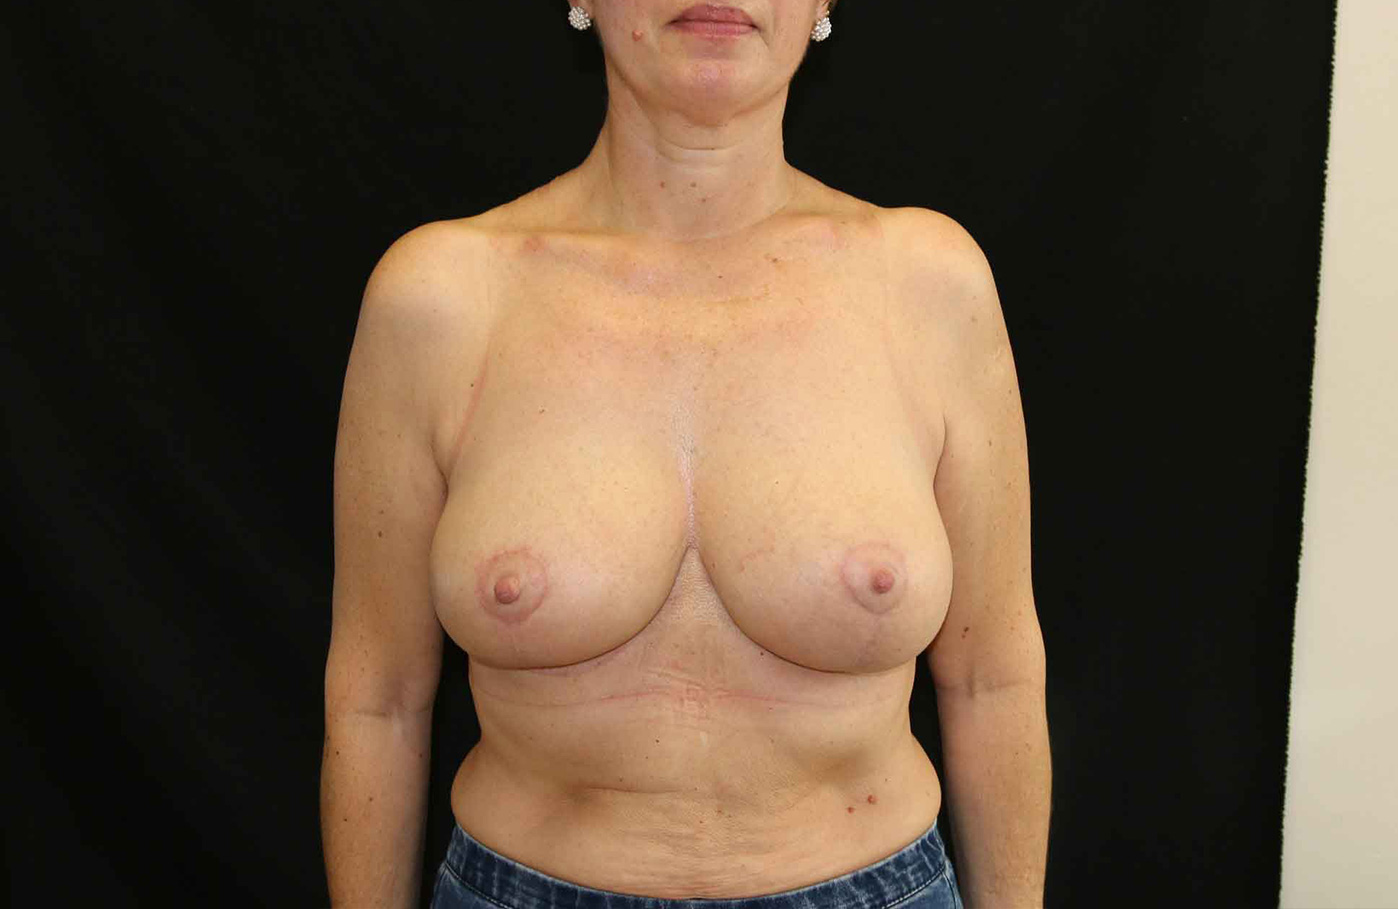 Apres chirurgie reduction mammaire